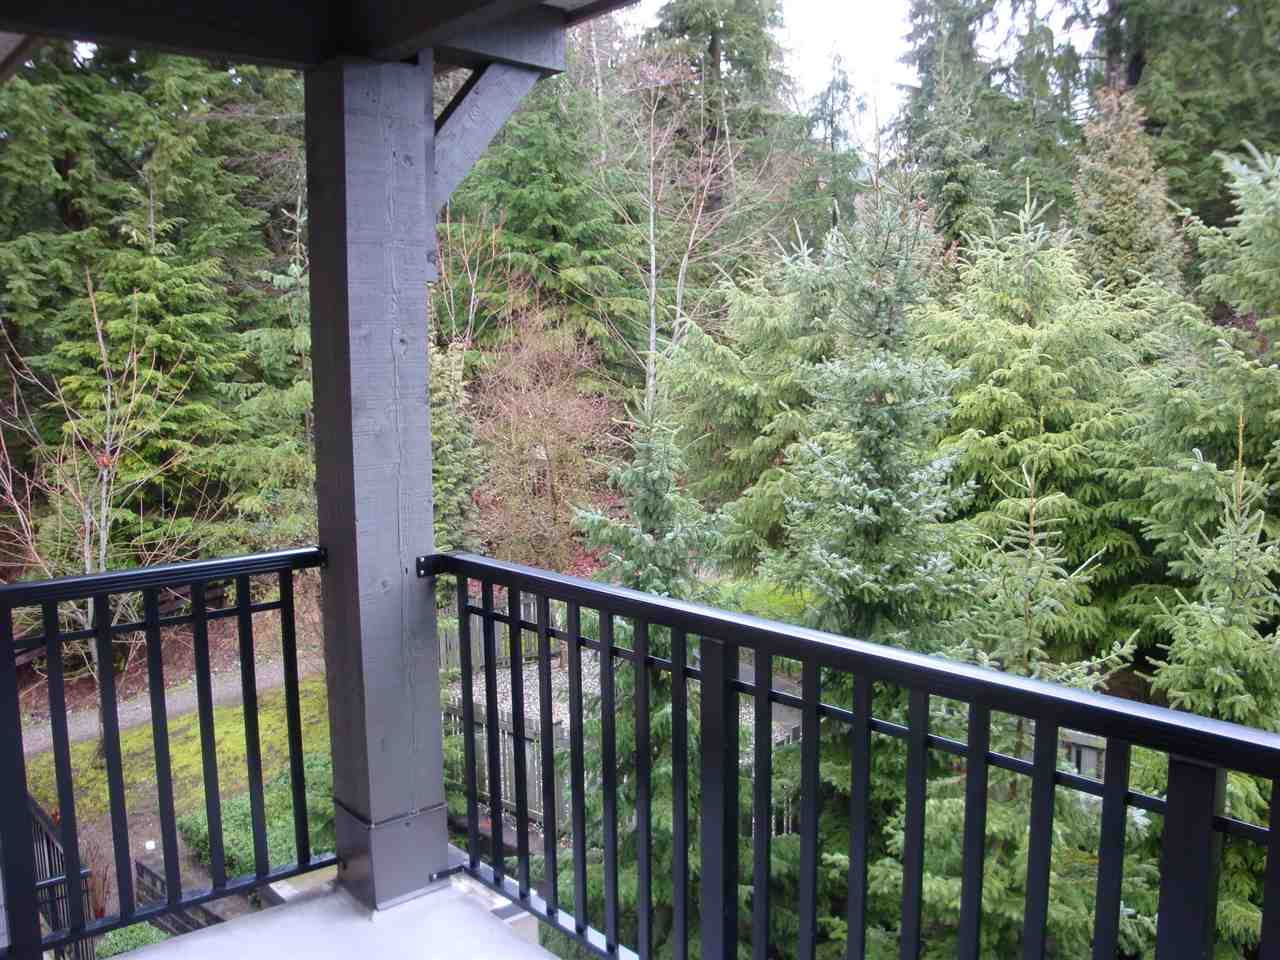 Photo 3: 402 2969 WHISPER Way in Coquitlam: Westwood Plateau Condo for sale : MLS® # R2037261